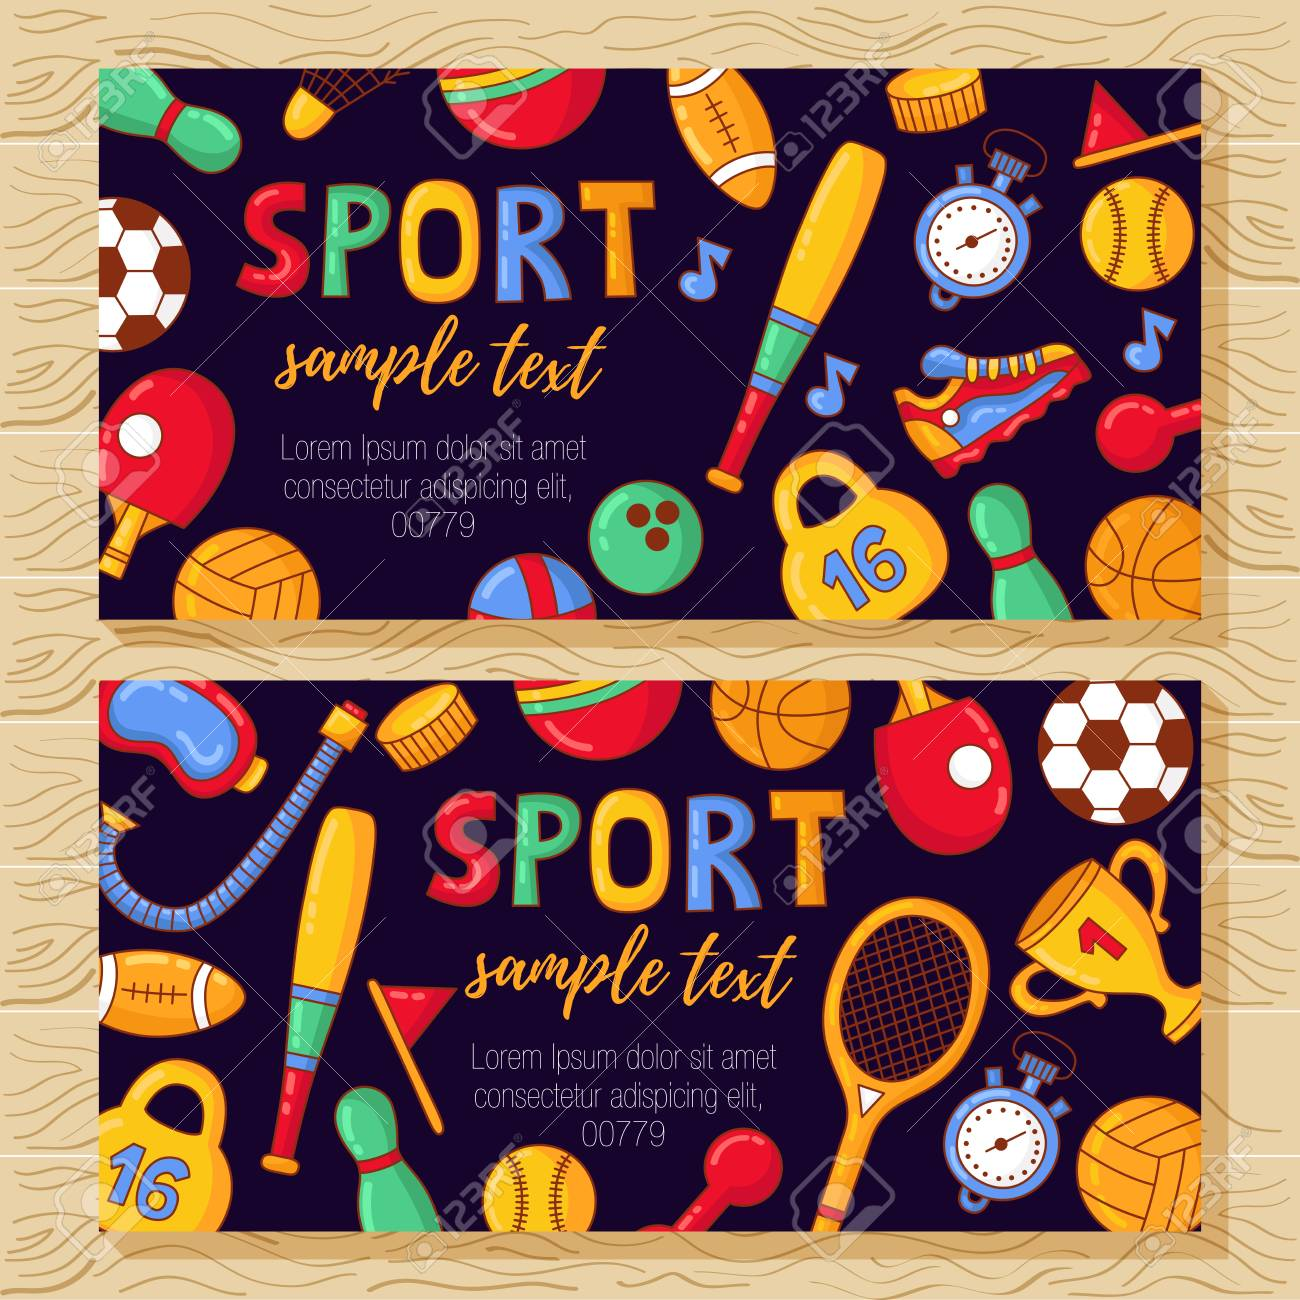 sport banners colorful cute templates with fitness doodle icons